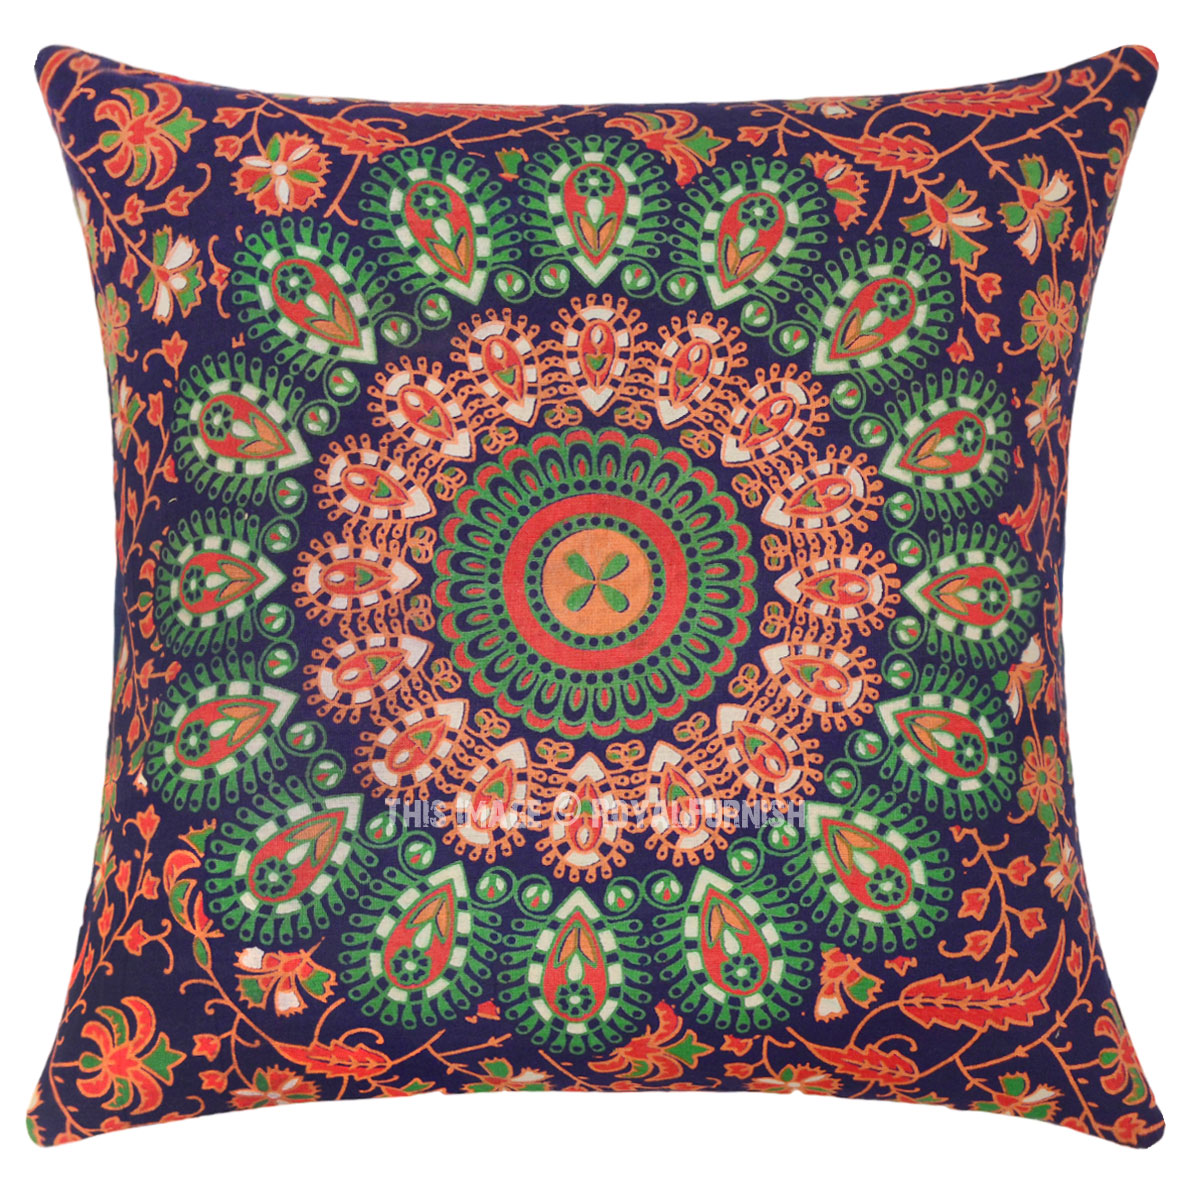 Blue & Orange Decorative Mandala Throw Pillow Cover - RoyalFurnish.com